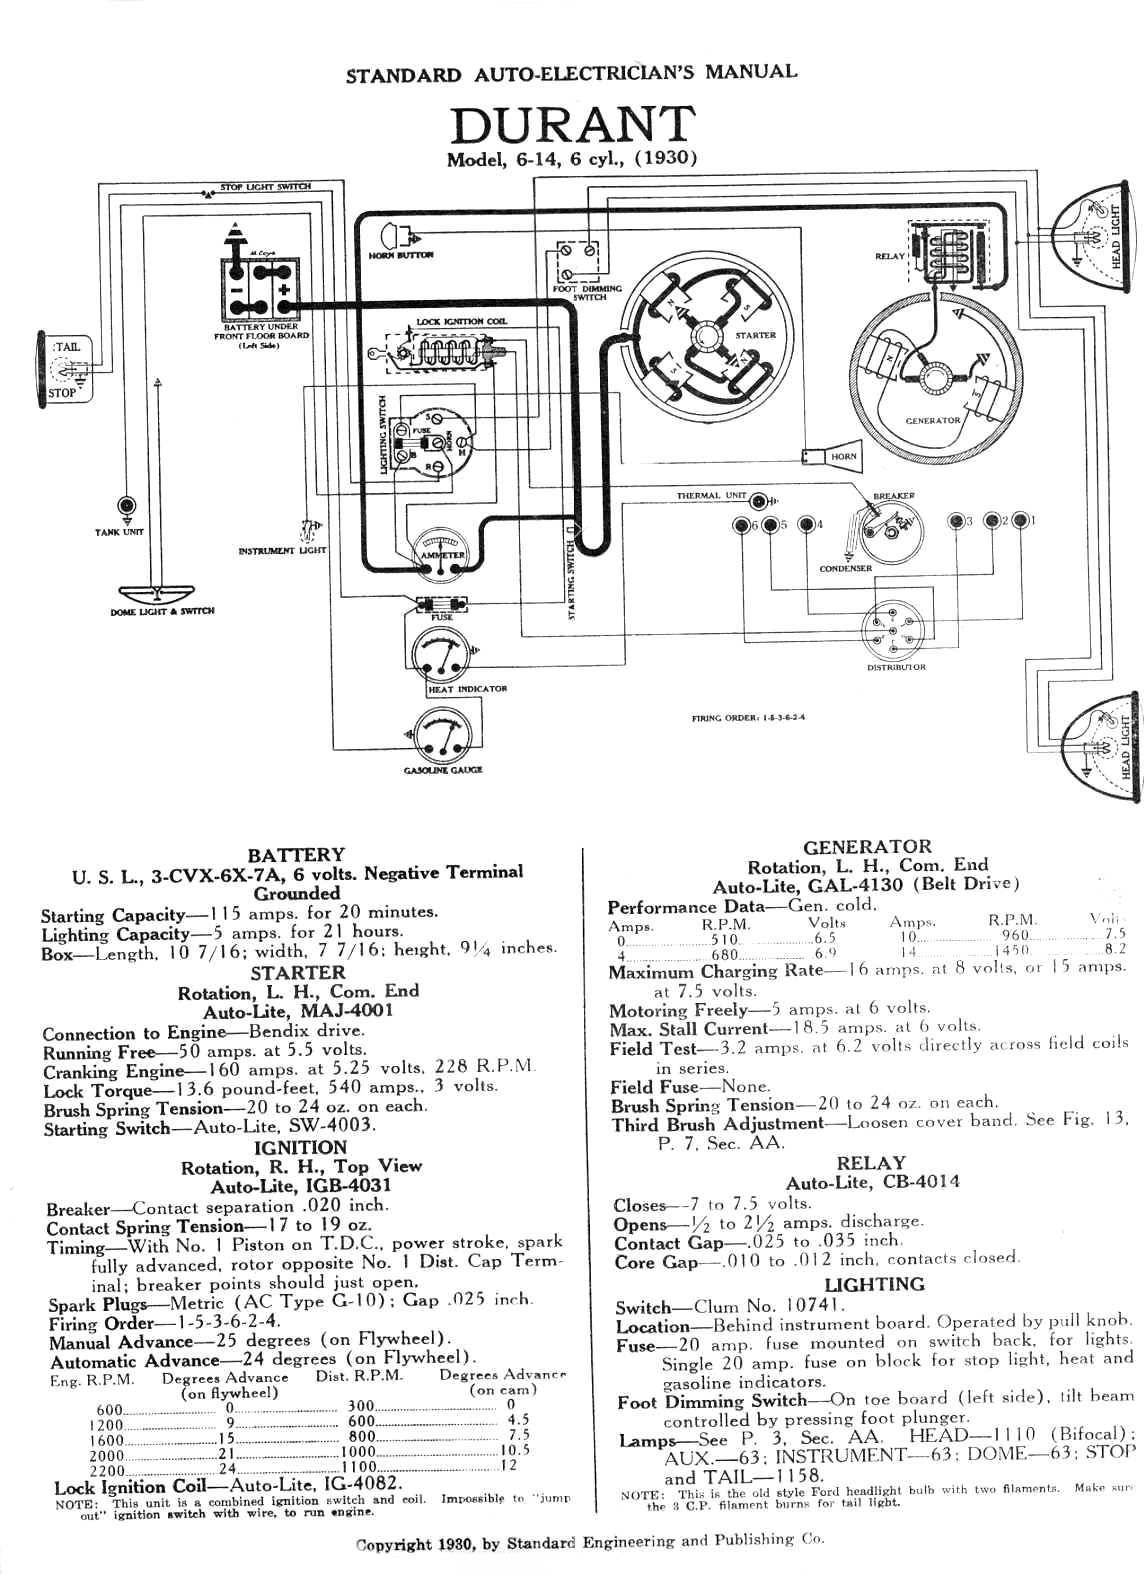 Durant Wiring Diagram Library Xj750 1930 Model 6 14 Diagrams